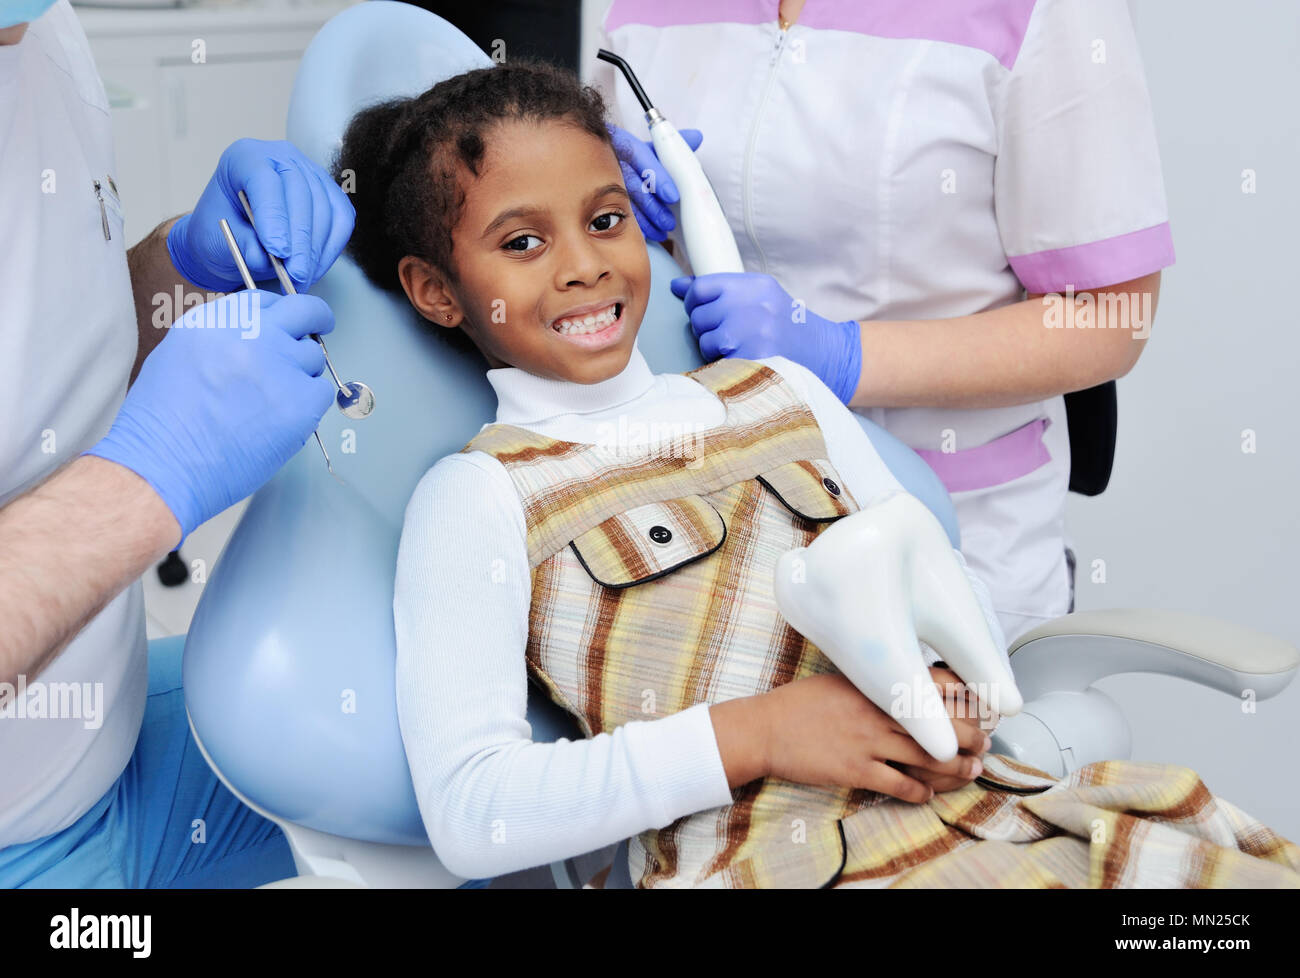 little African girl with dark skin in dentistry - Stock Image